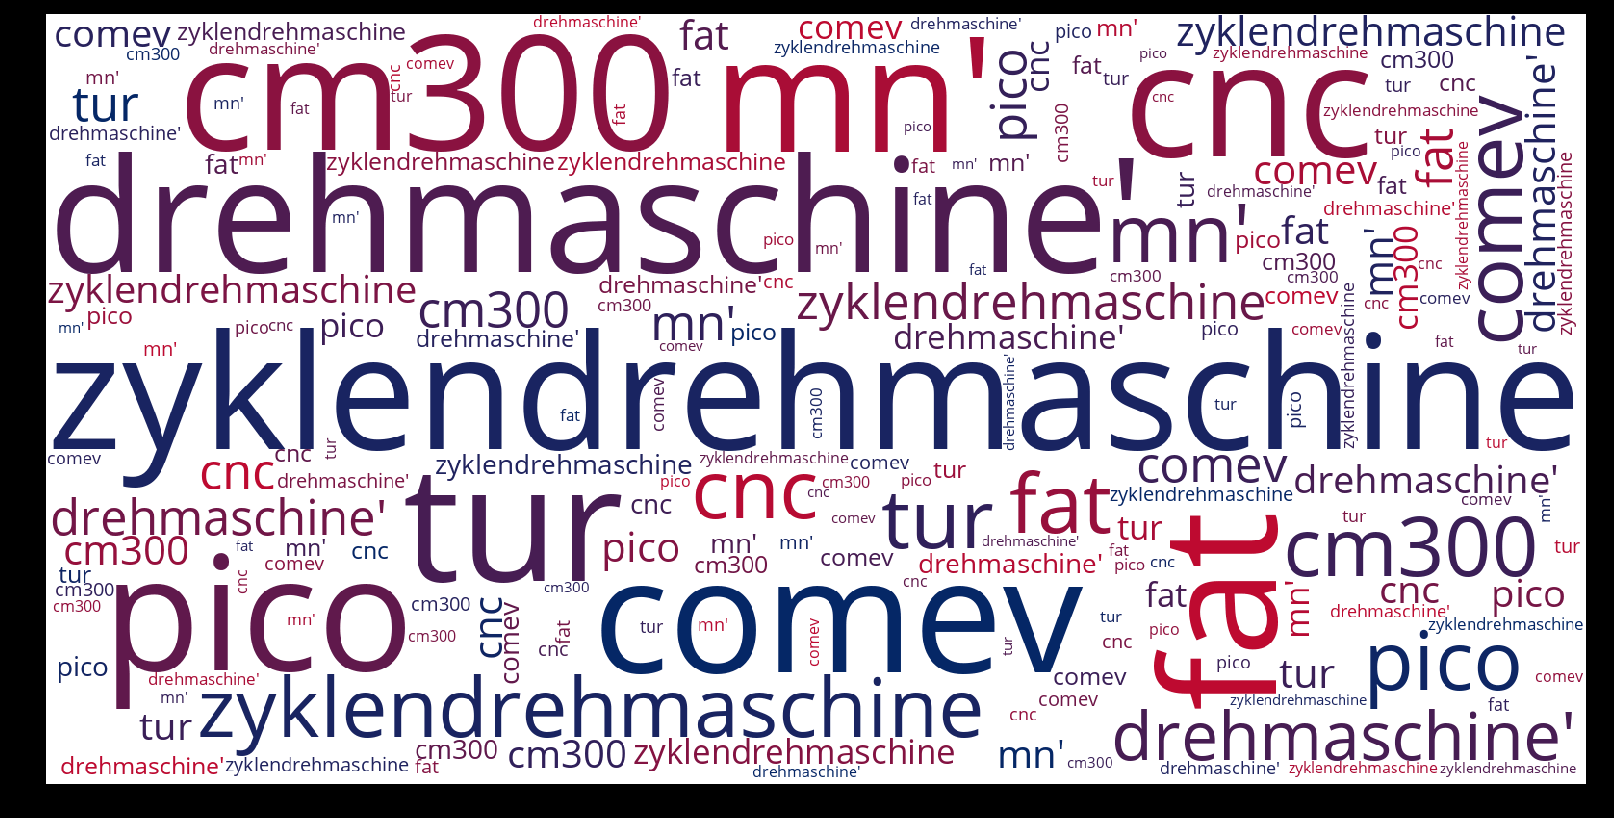 Zyklendrehmaschine-wordcloud